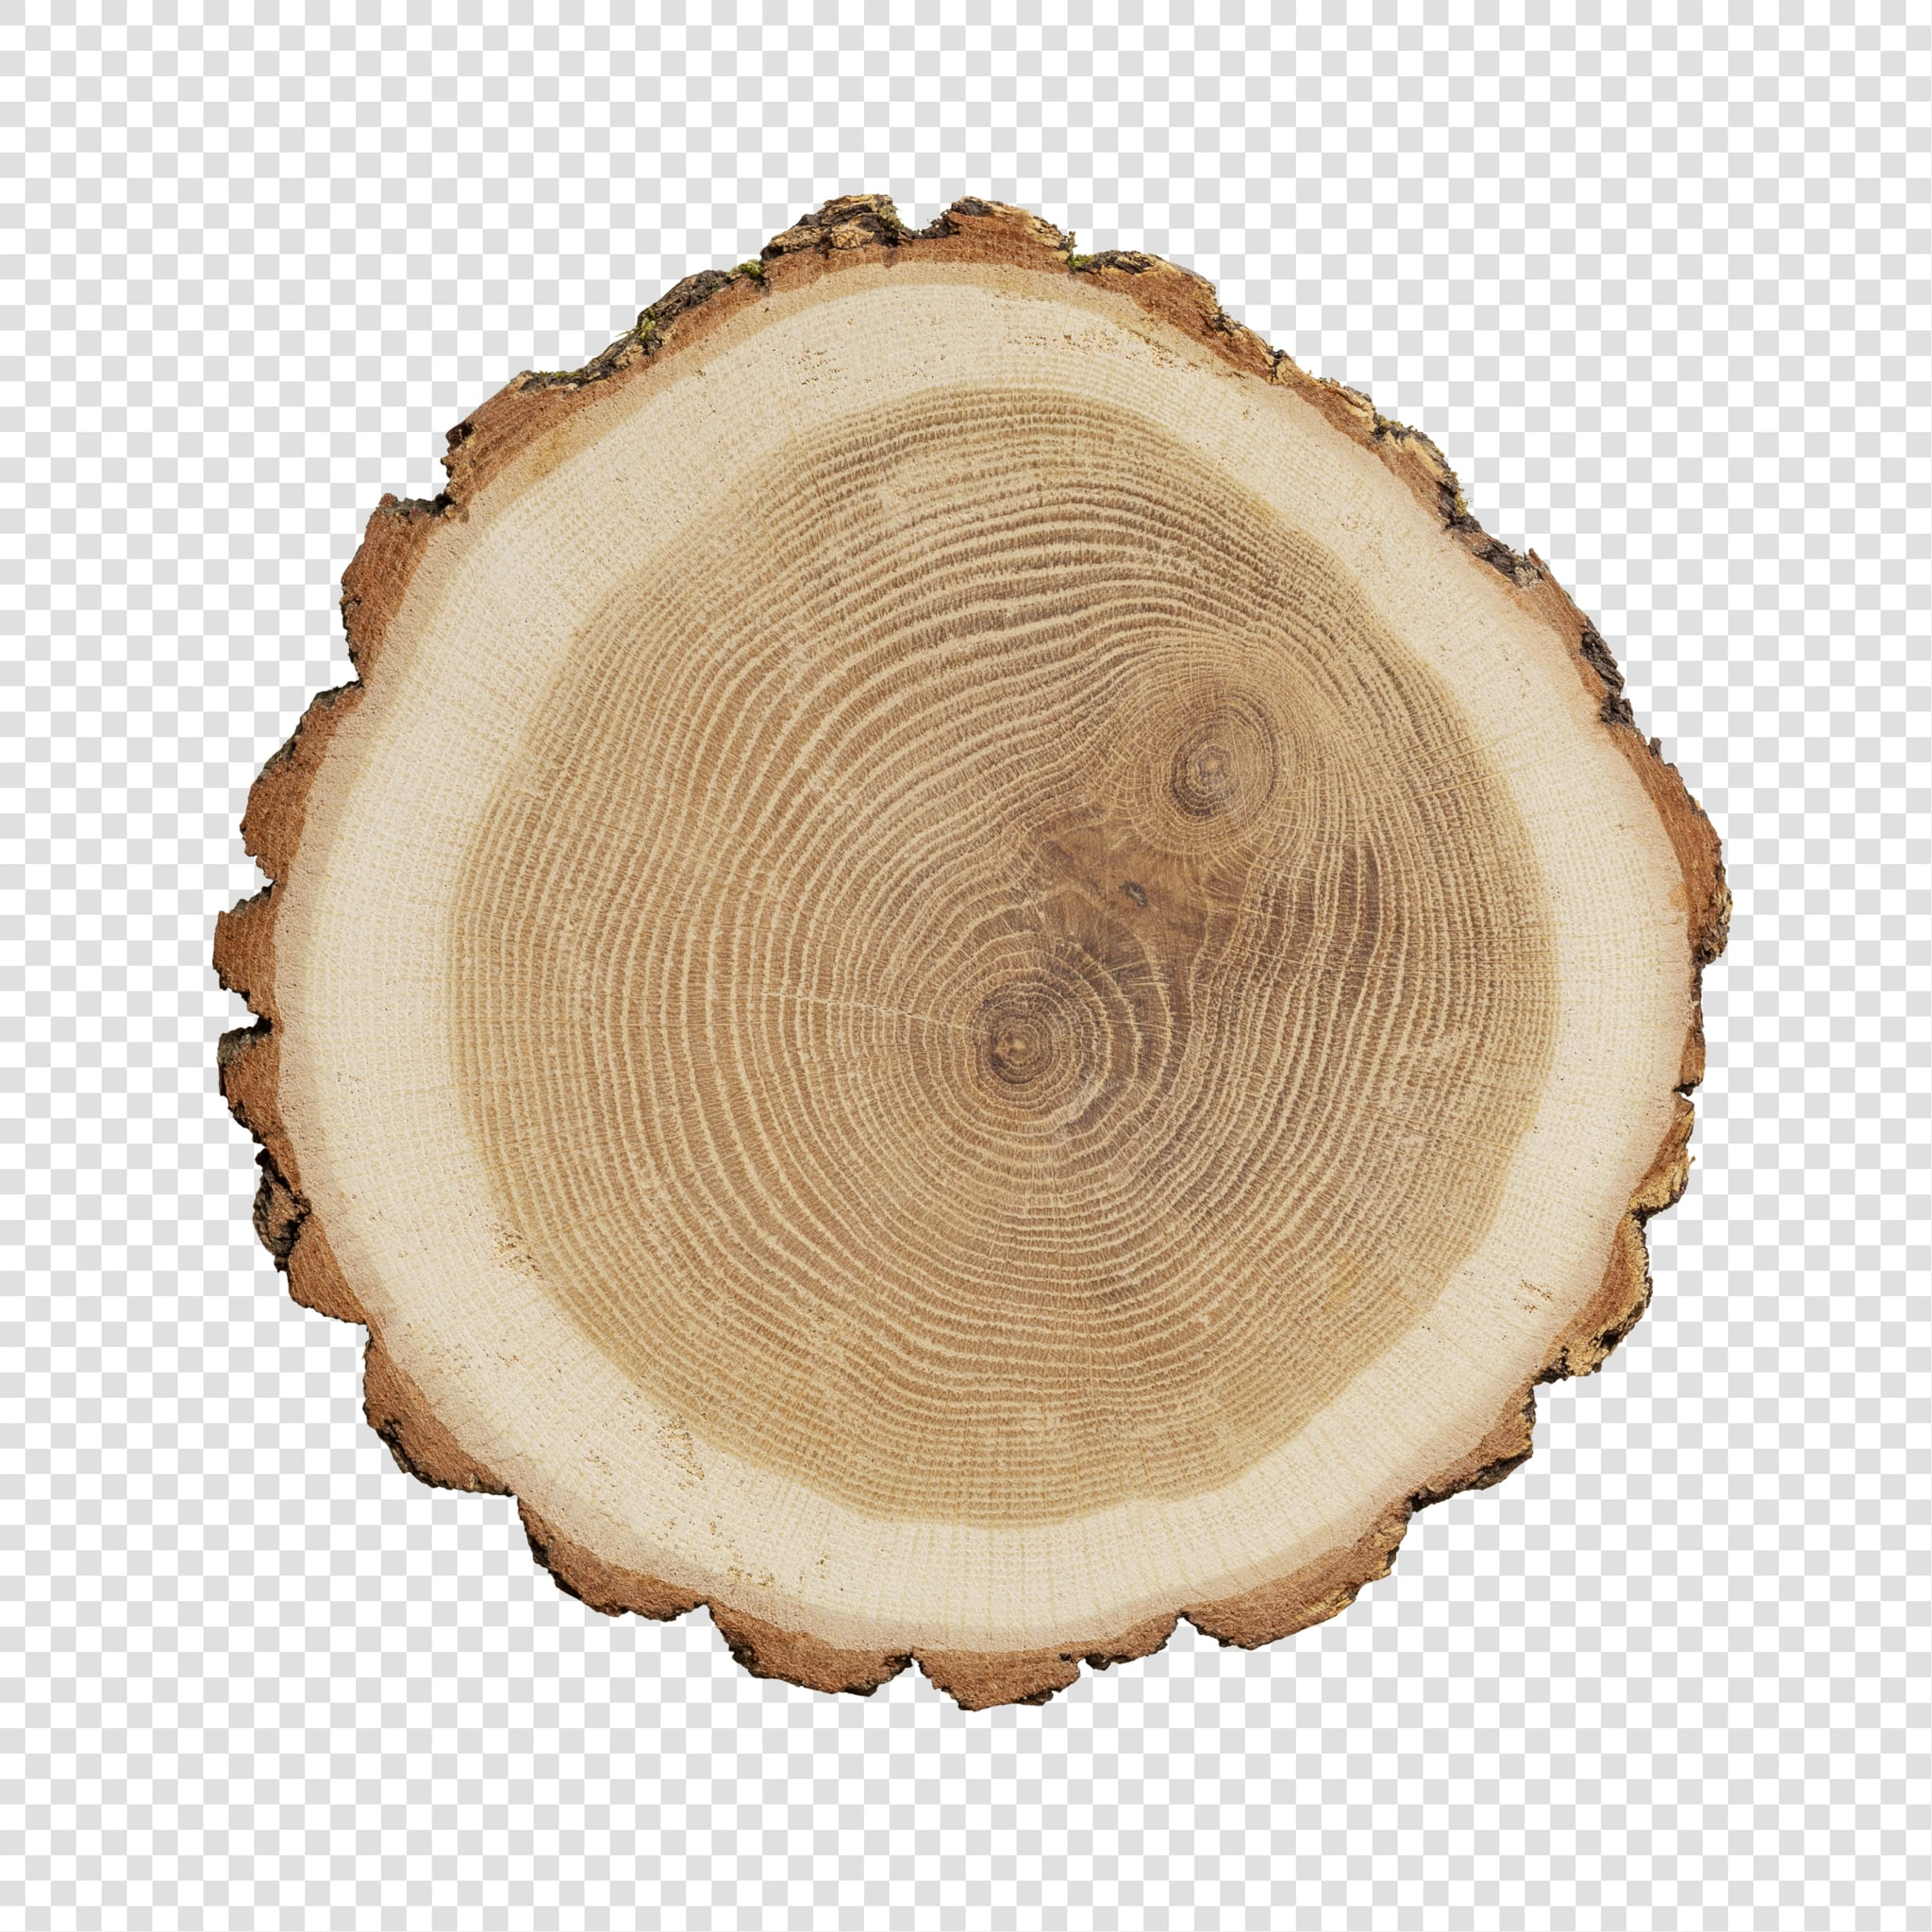 Isolated Wood slice psd image